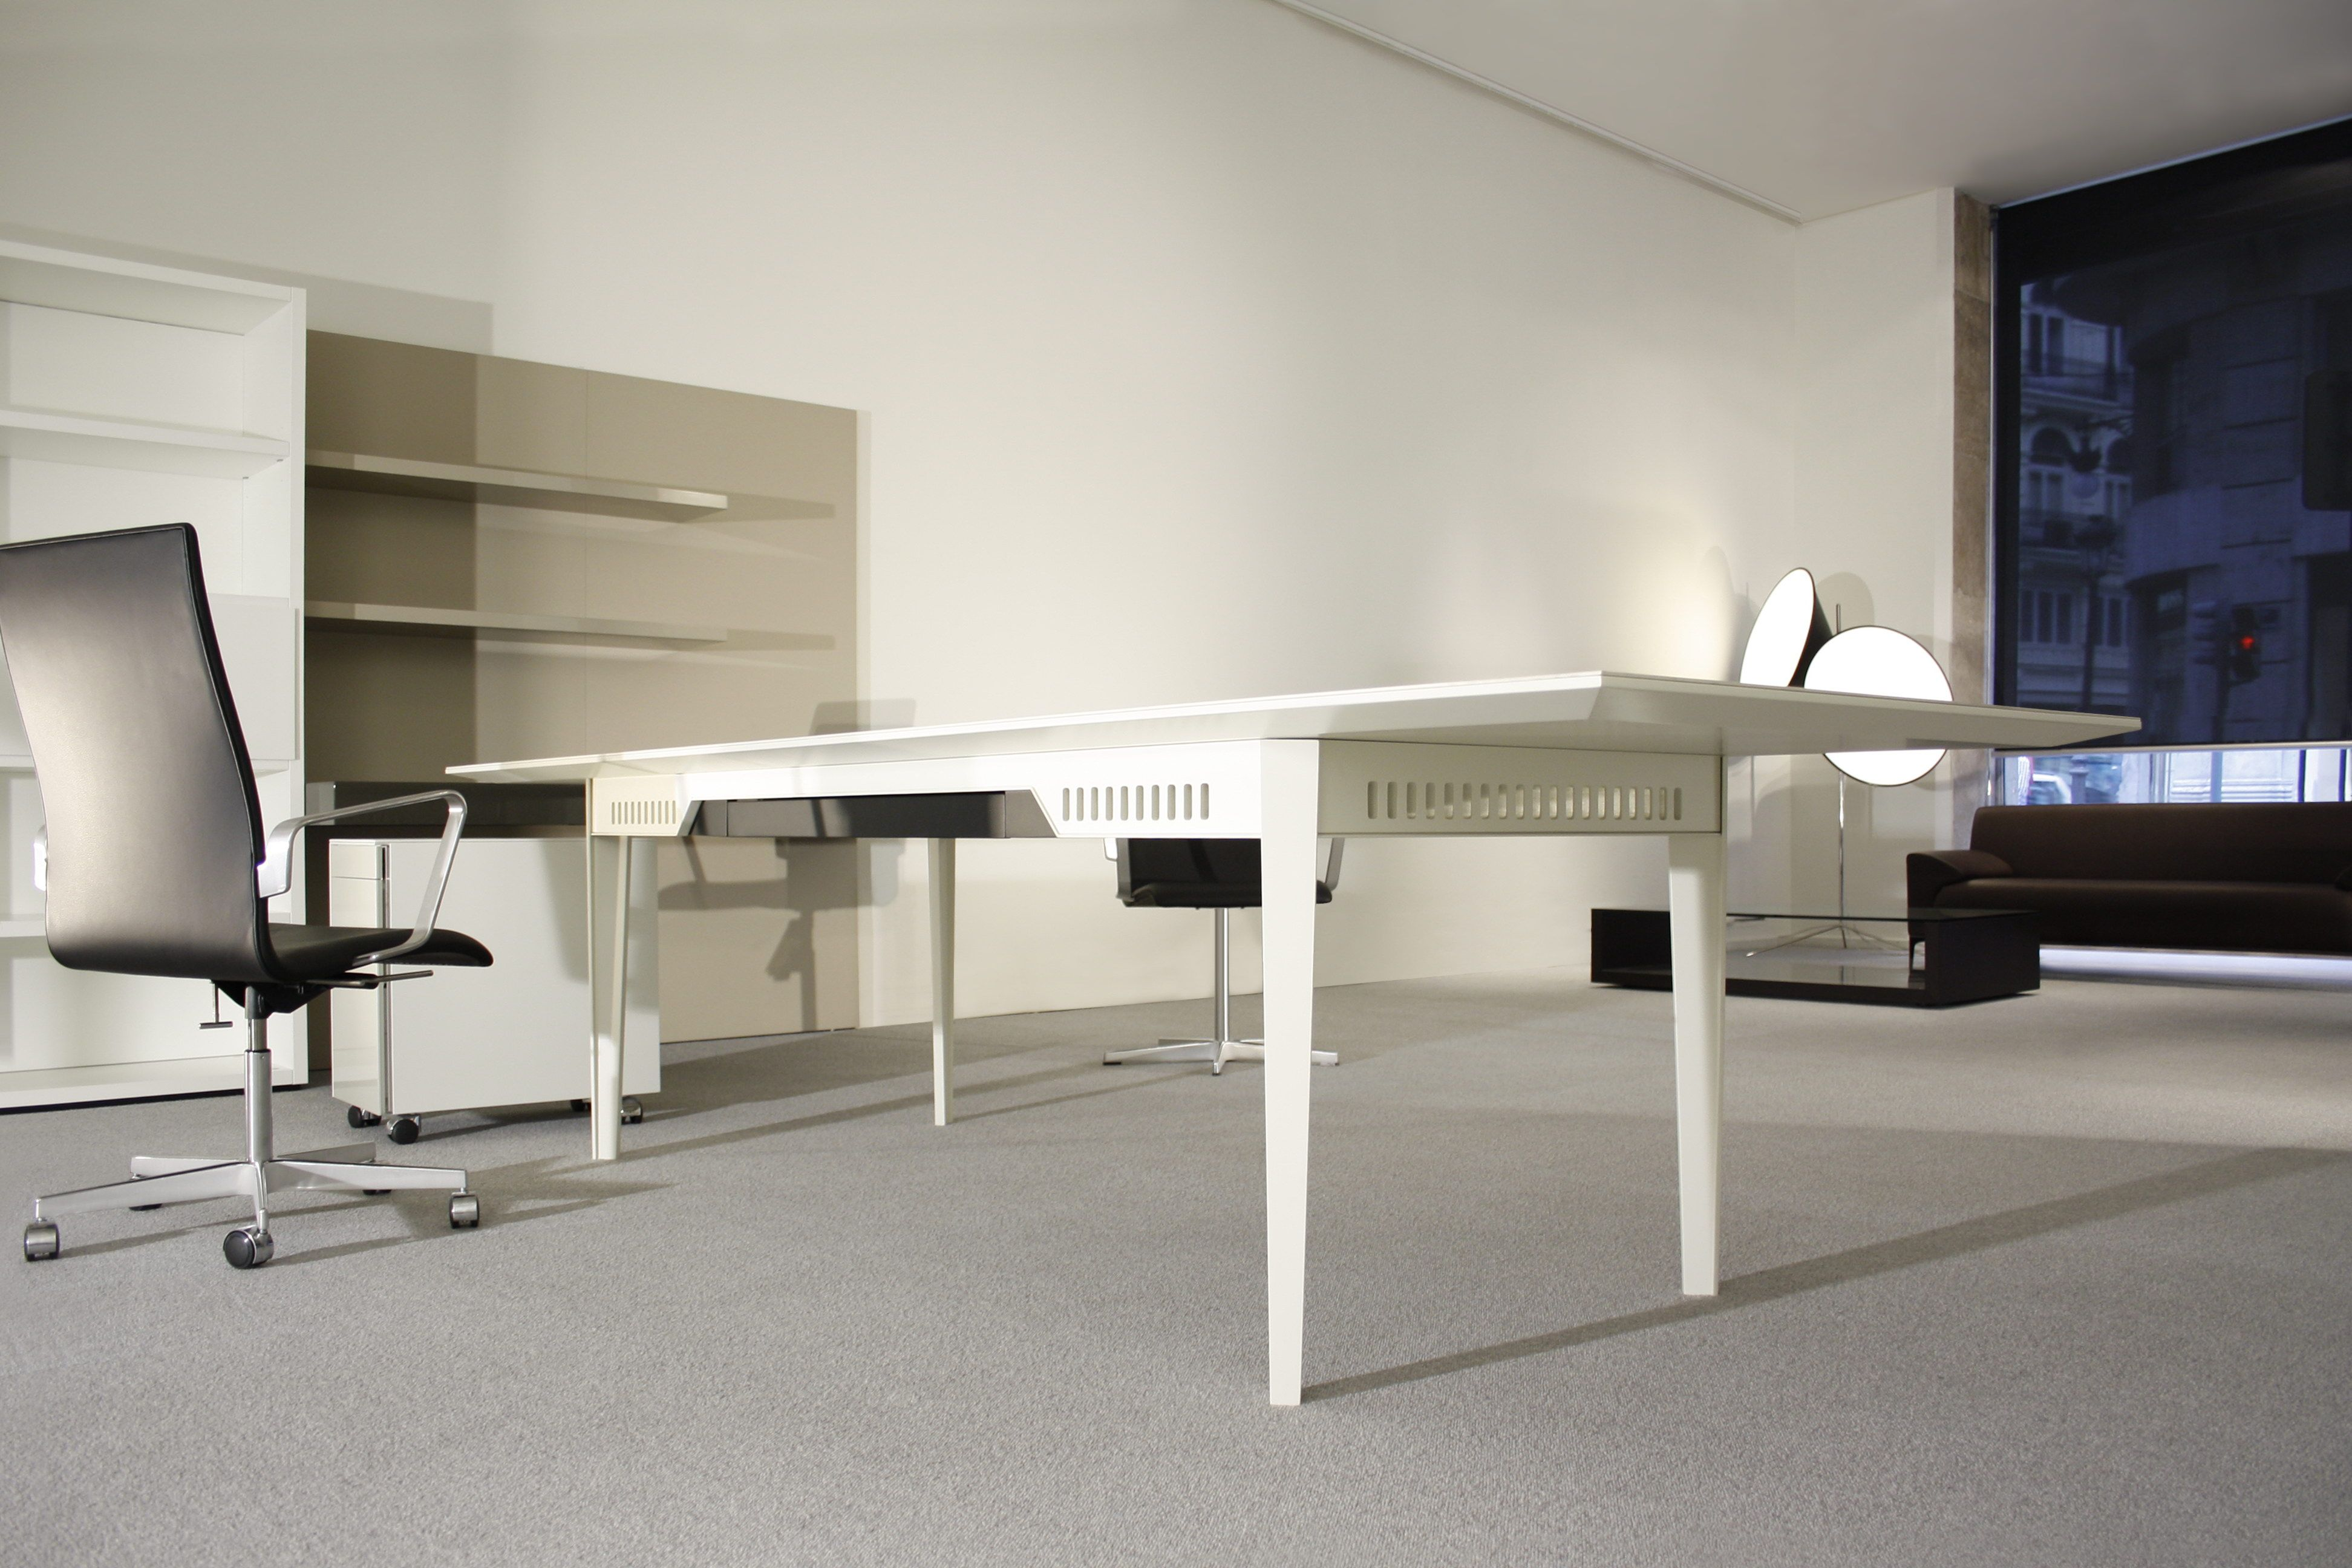 martinete by www.jmm.es FURNITURE# DESK# Executive # home office#… #3F5A8C 3888x2592